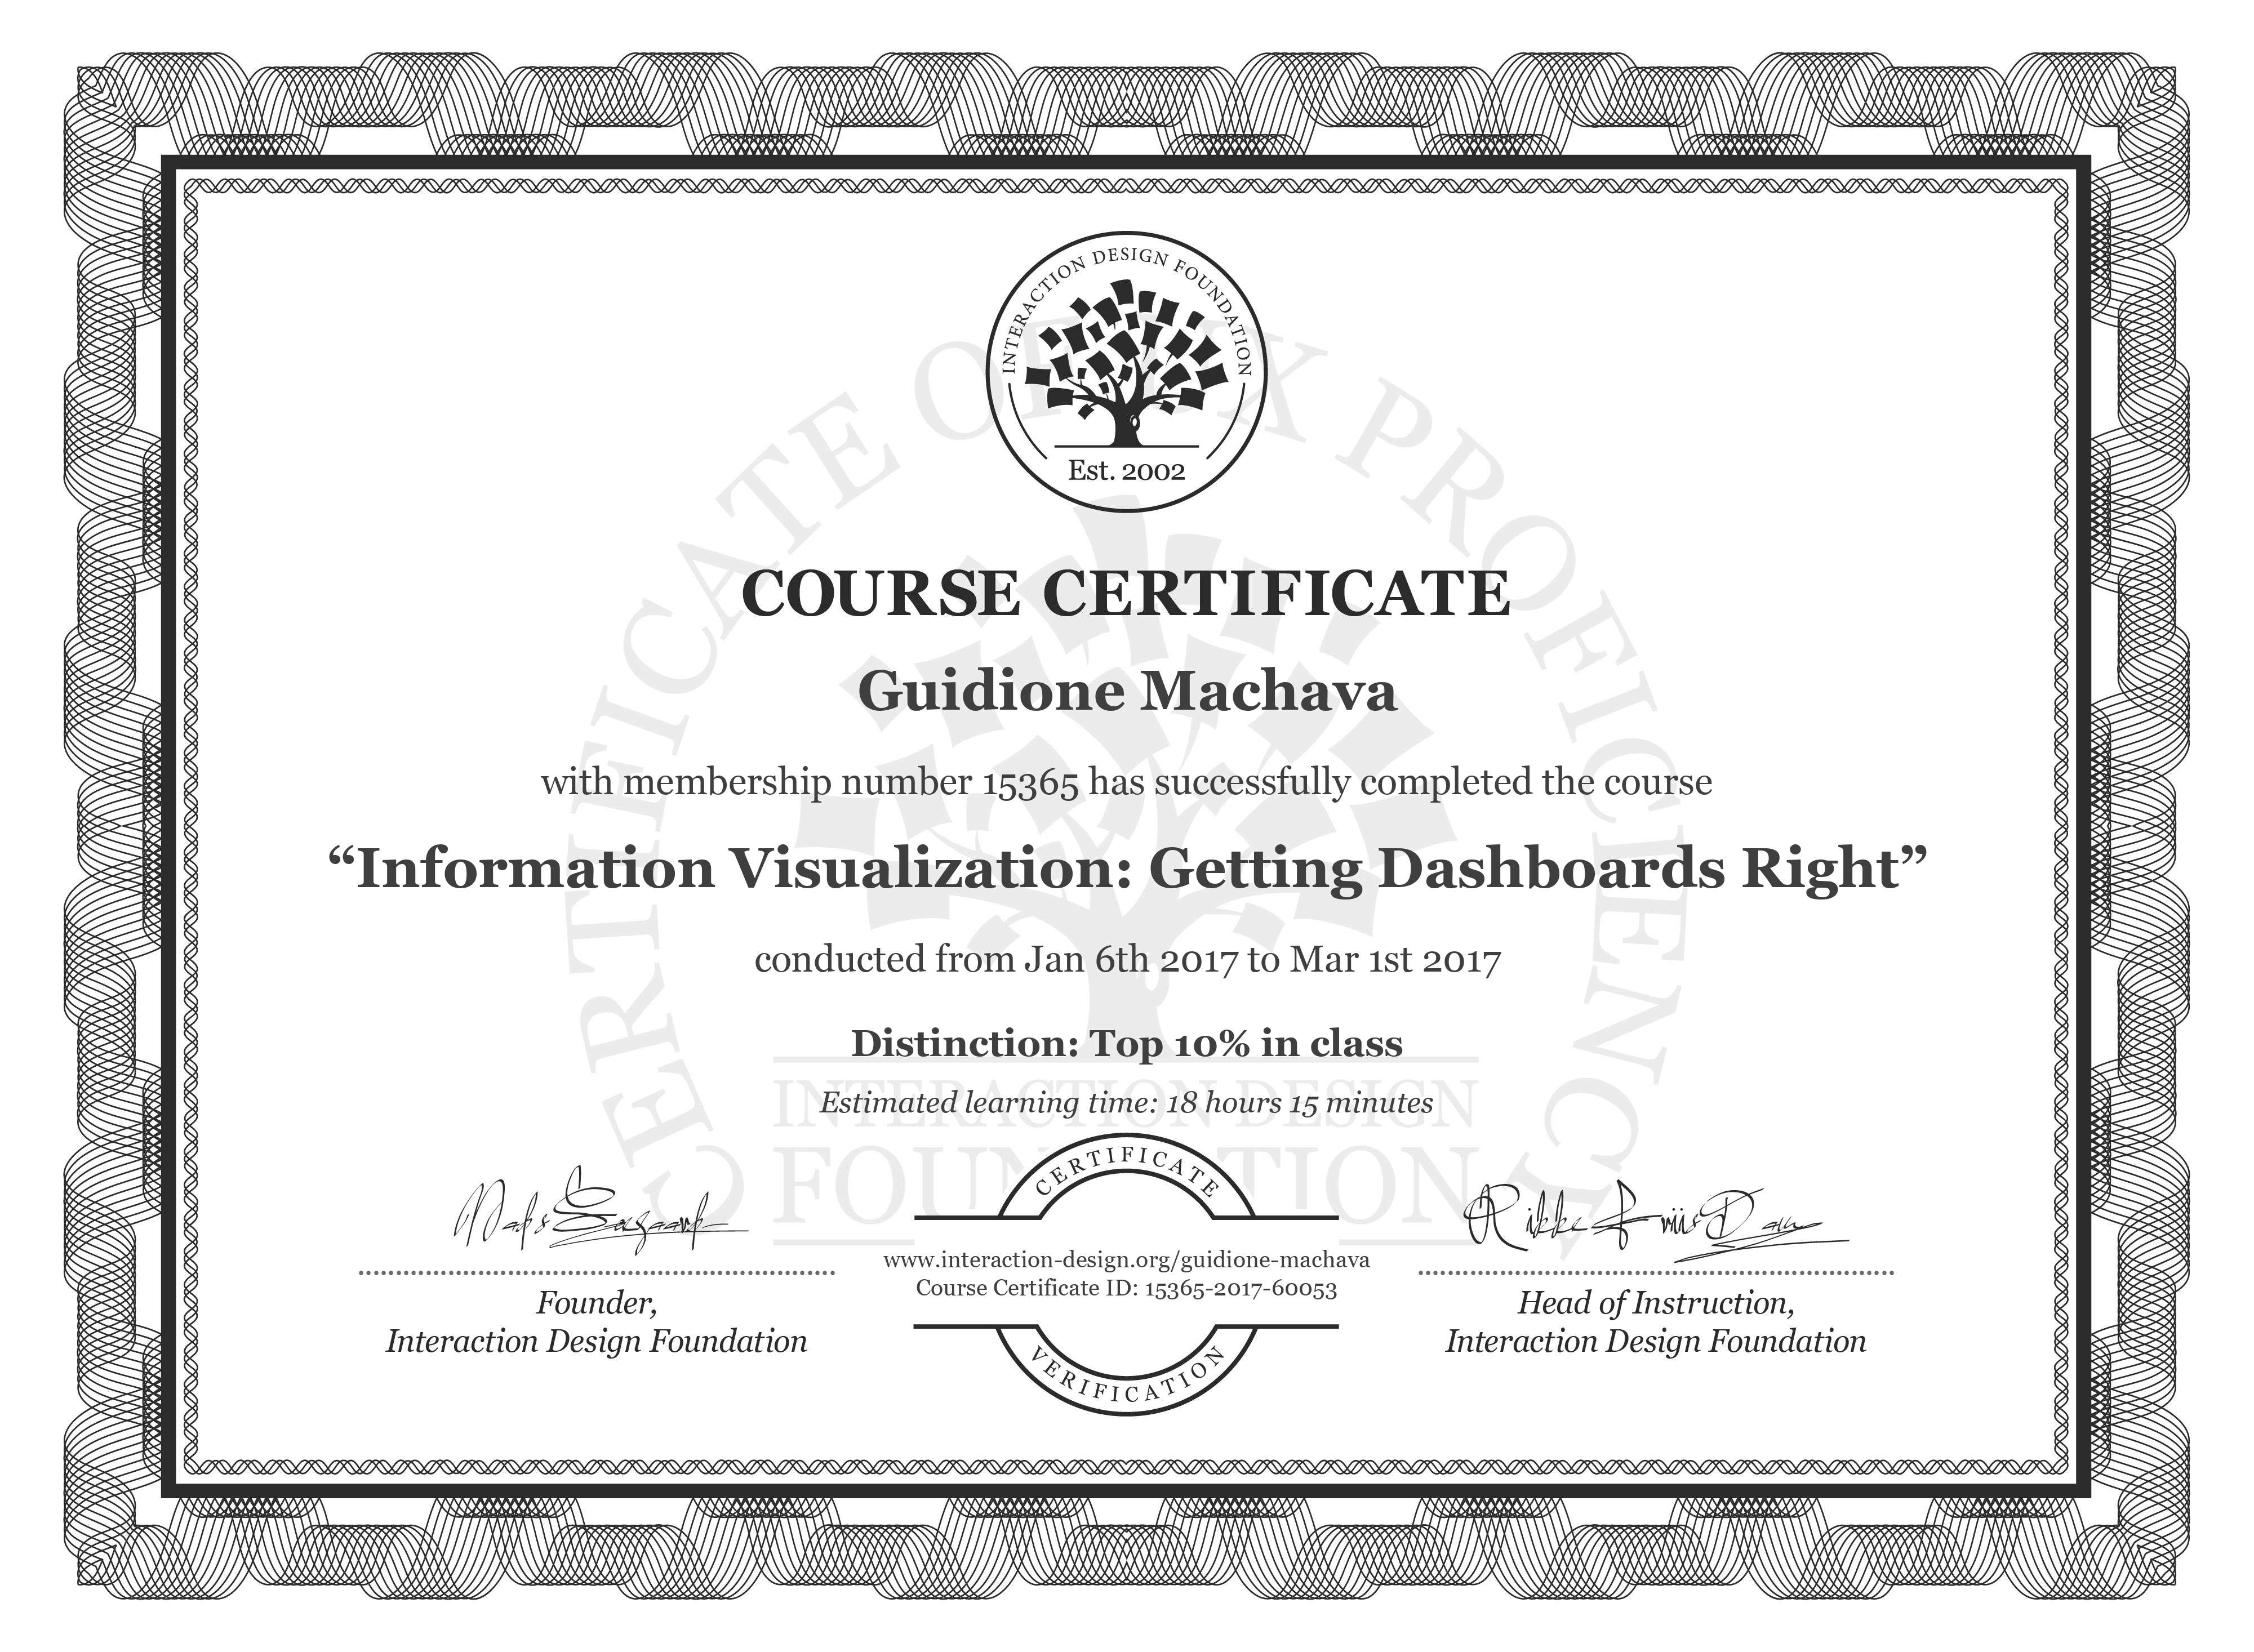 Guidione Machava: Course Certificate - Information Visualization: Getting Dashboards Right